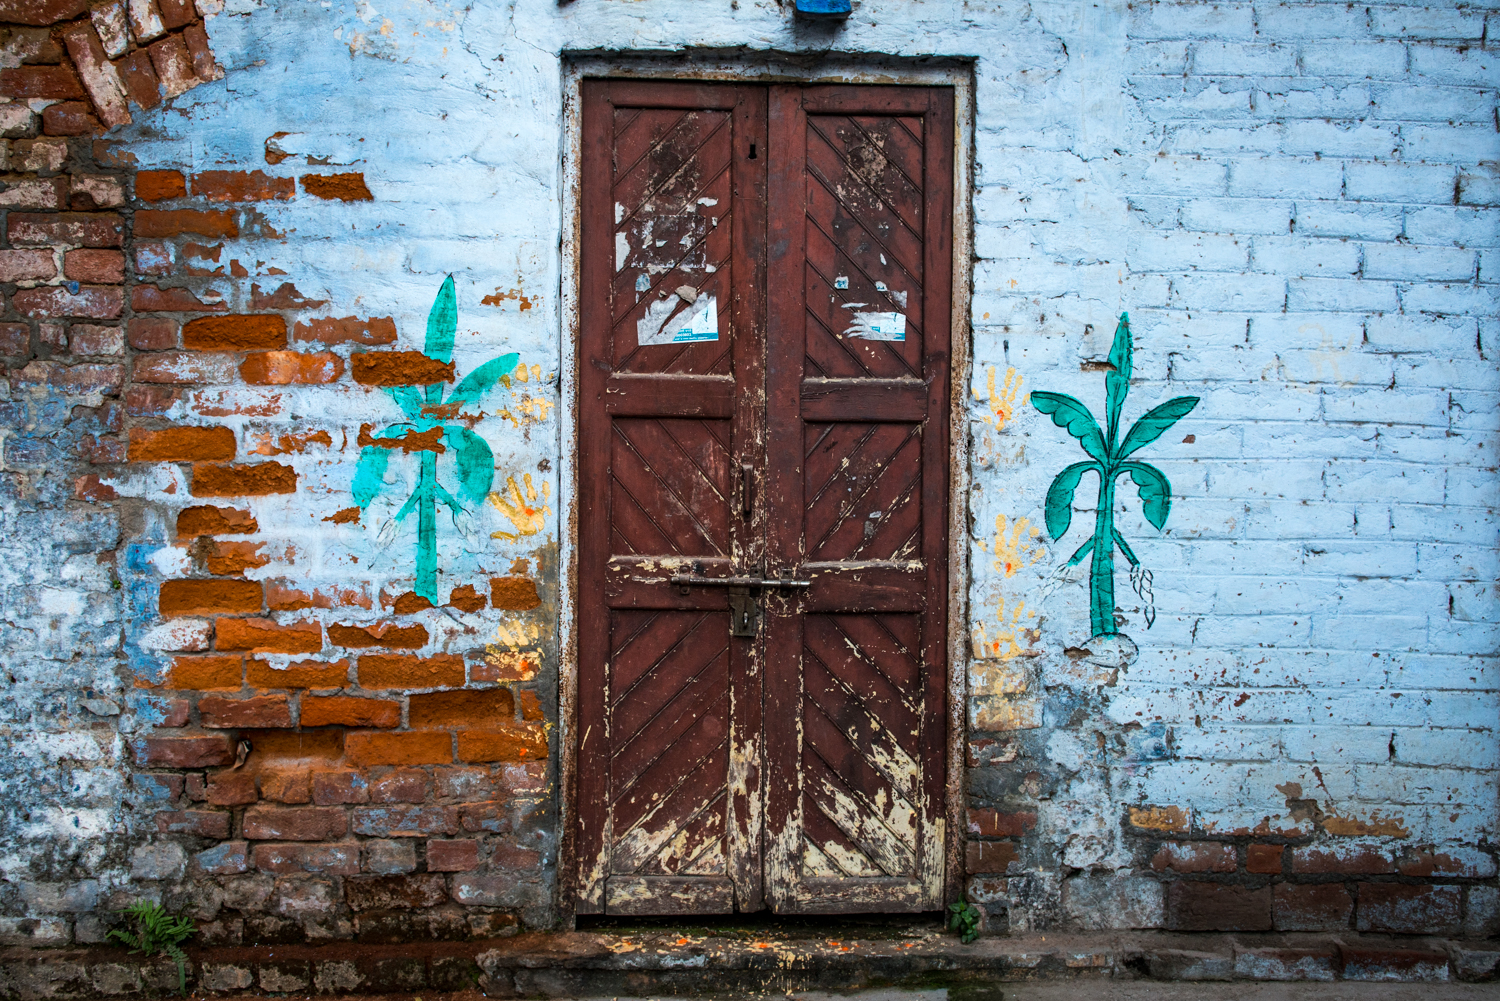 There are hundreds of doors in India that are painted with colourful interesting designs - Uttar Pradesh, India.